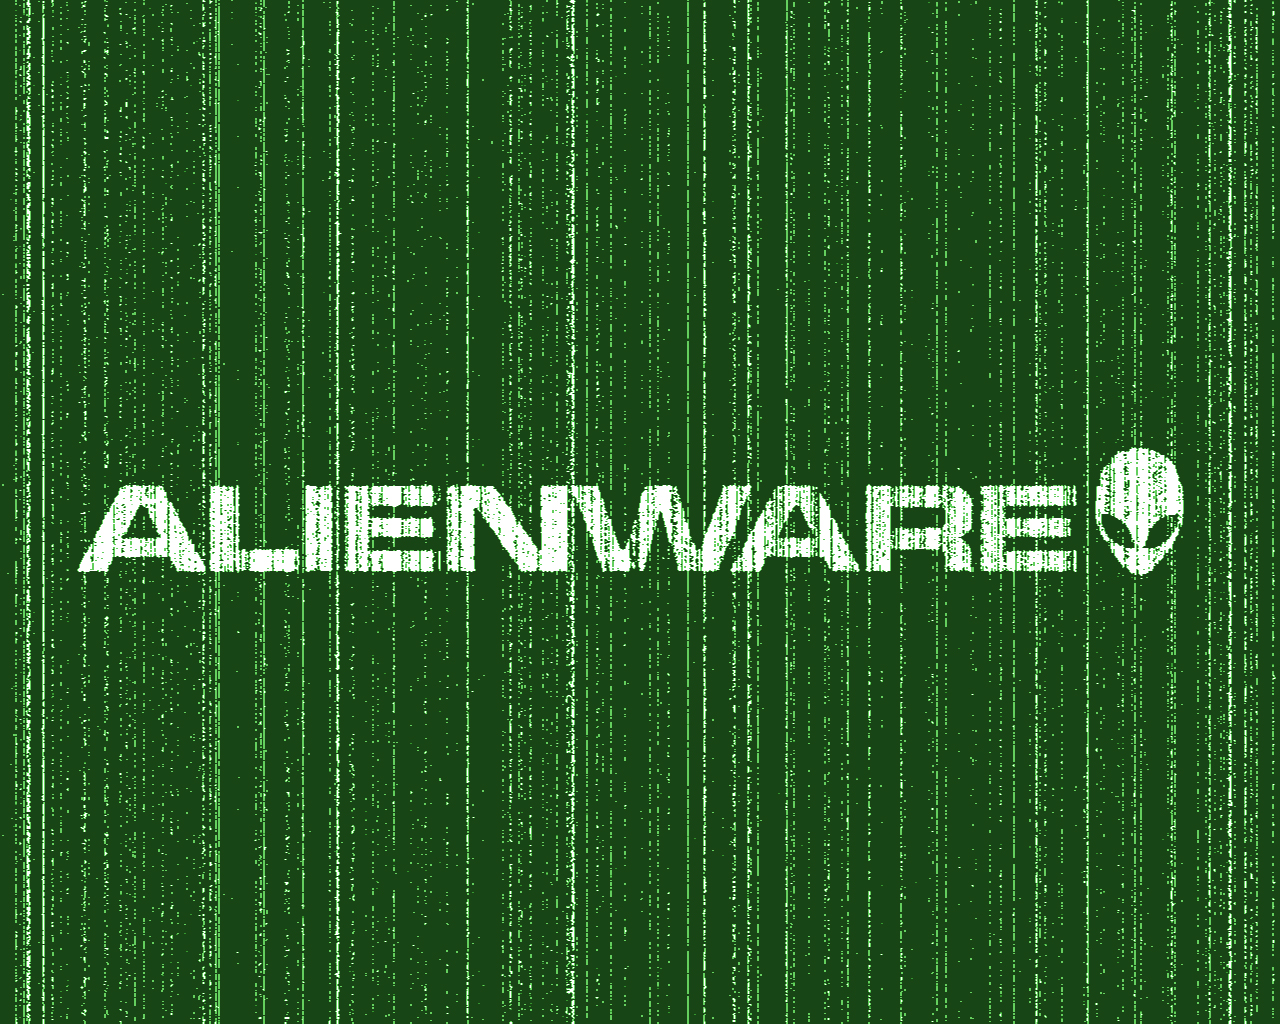 Linux Iphone Wallpaper Alienware Matrix Wallpapers Alienware Matrix Stock Photos